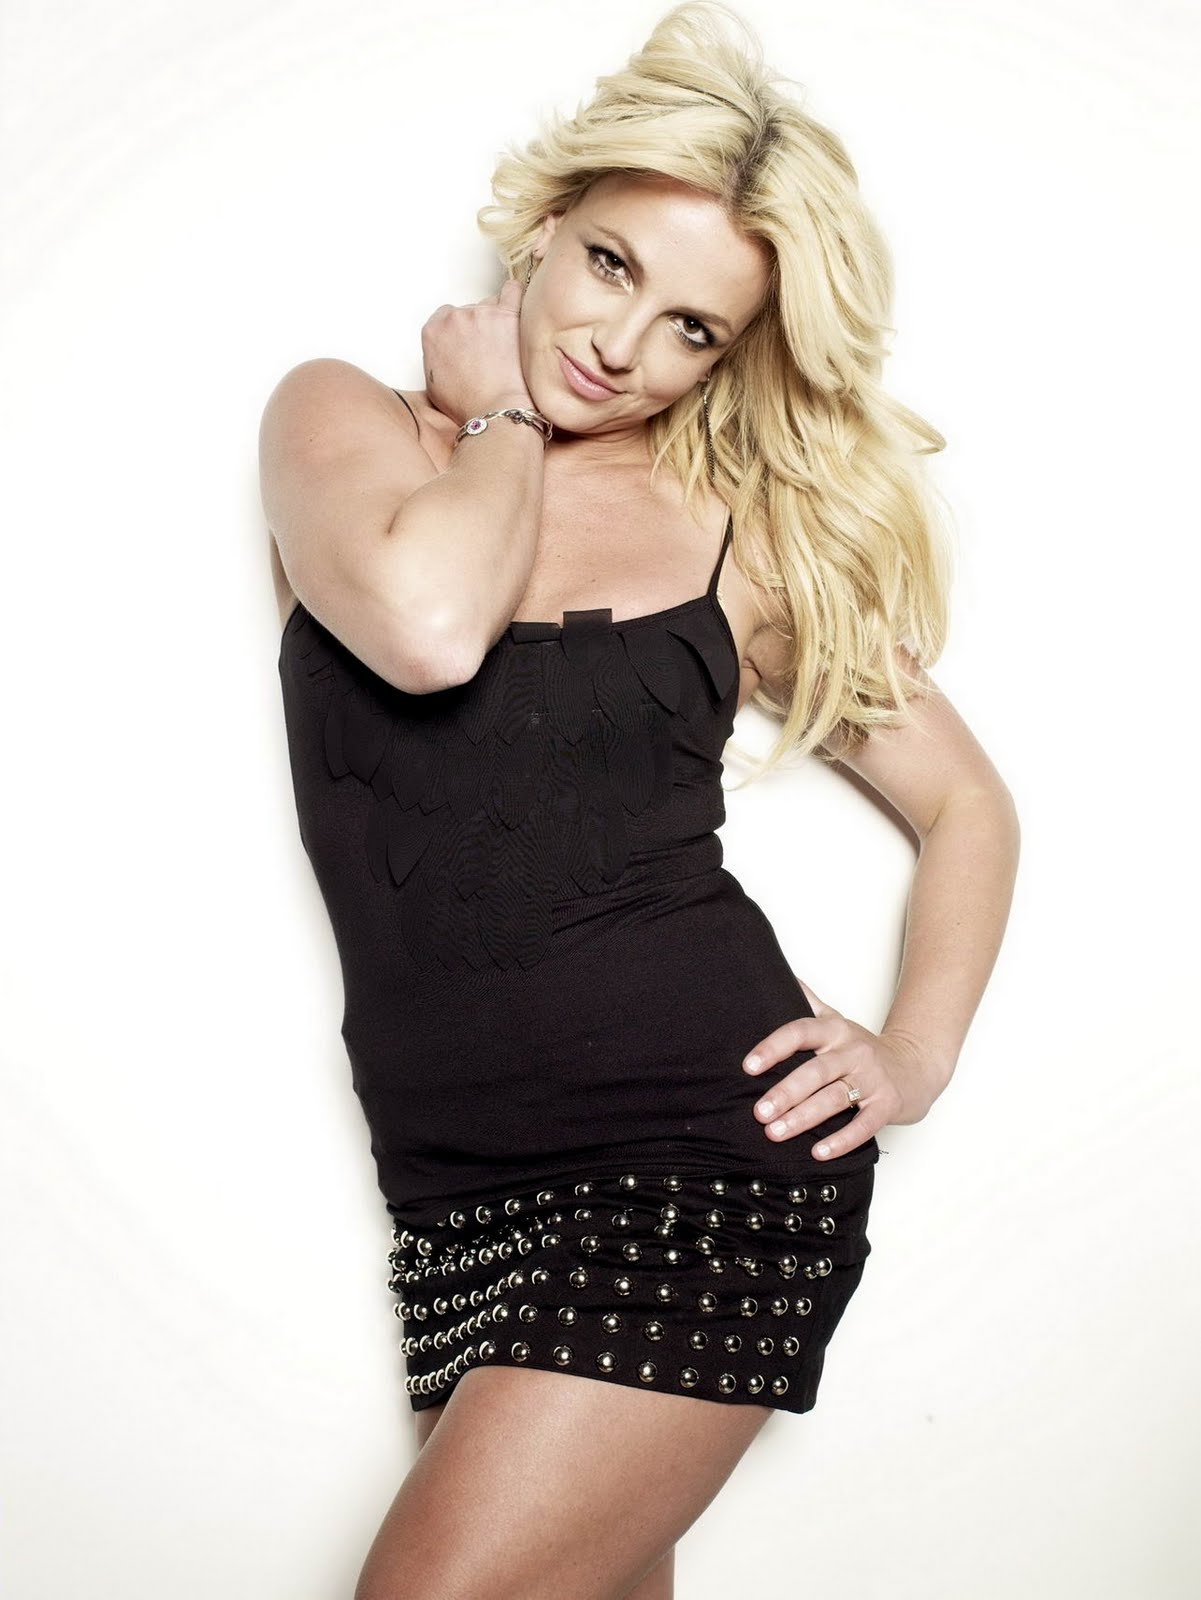 http://3.bp.blogspot.com/-YZwwvWRrQ9Y/ToaKcXCoL5I/AAAAAAAAAdU/FWPu8k4QBgI/s1600/Britney+Spears+in+black+mini+dress+for+Cosmo+%25286%2529.jpg